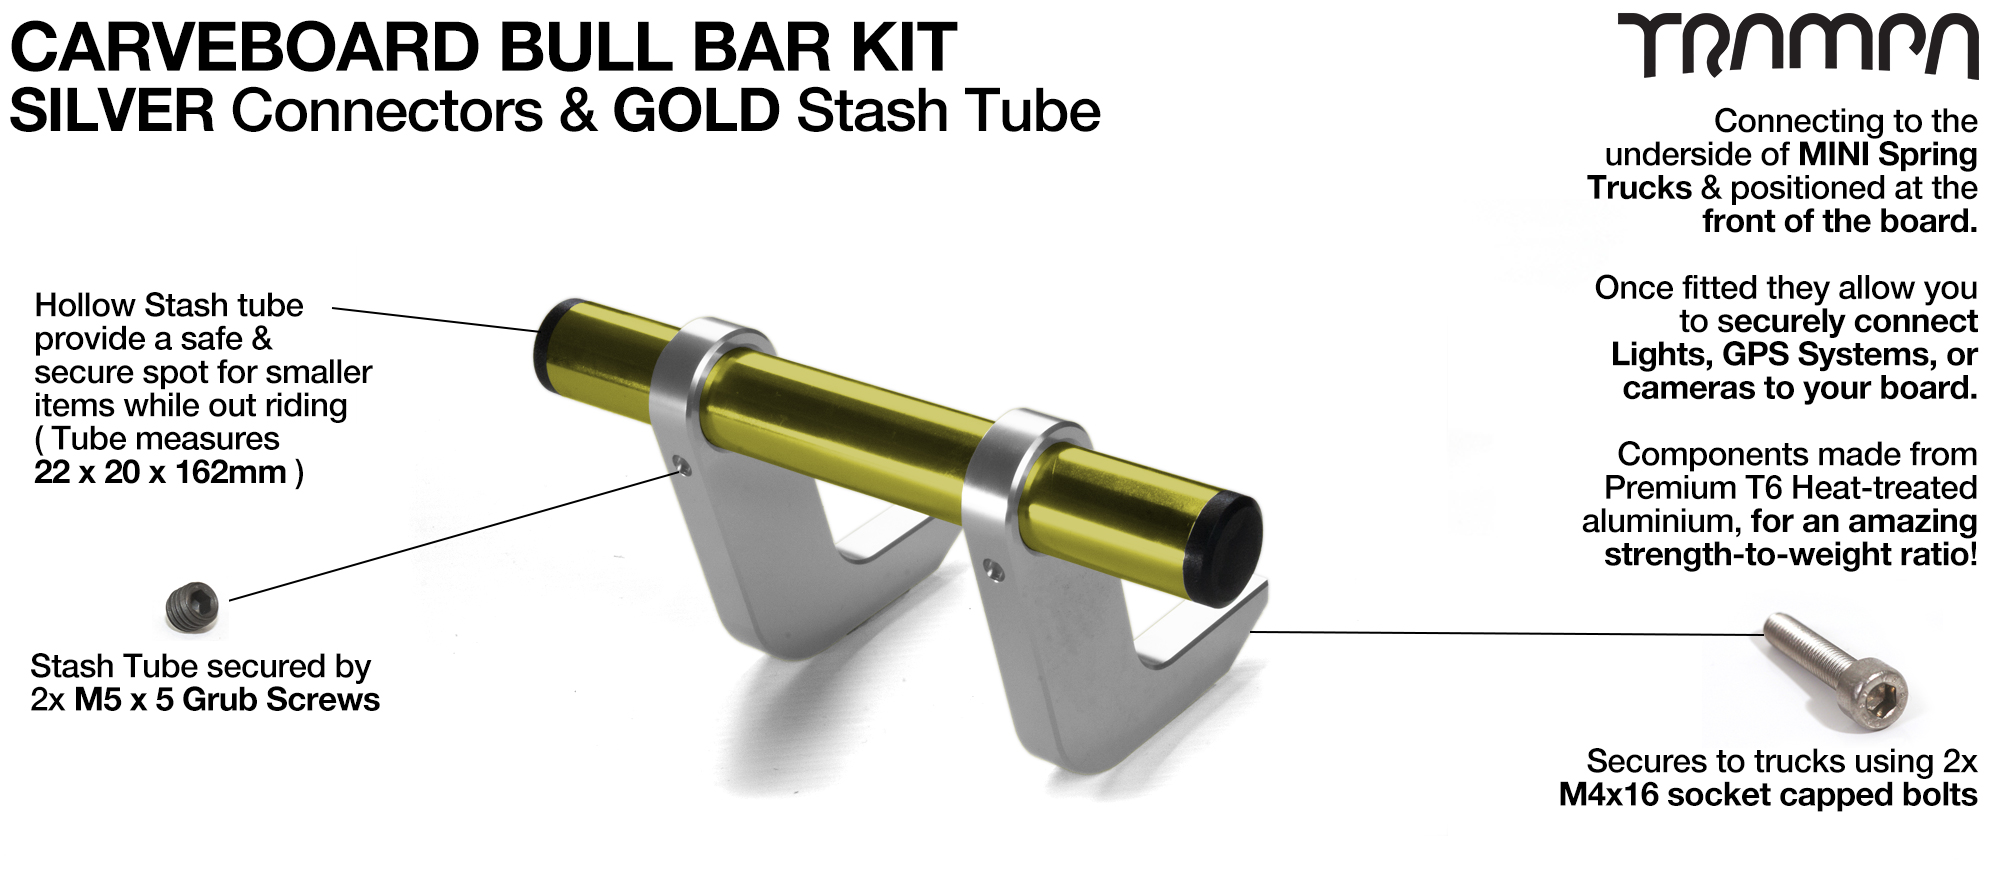 SILVER Uprights & GOLD Crossbar BULL BARS for CARVE BOARDS using T6 Heat Treated CNC'd Aluminum Clamps, Hollow Aluminium Stash Tubes with Rubber end bungs